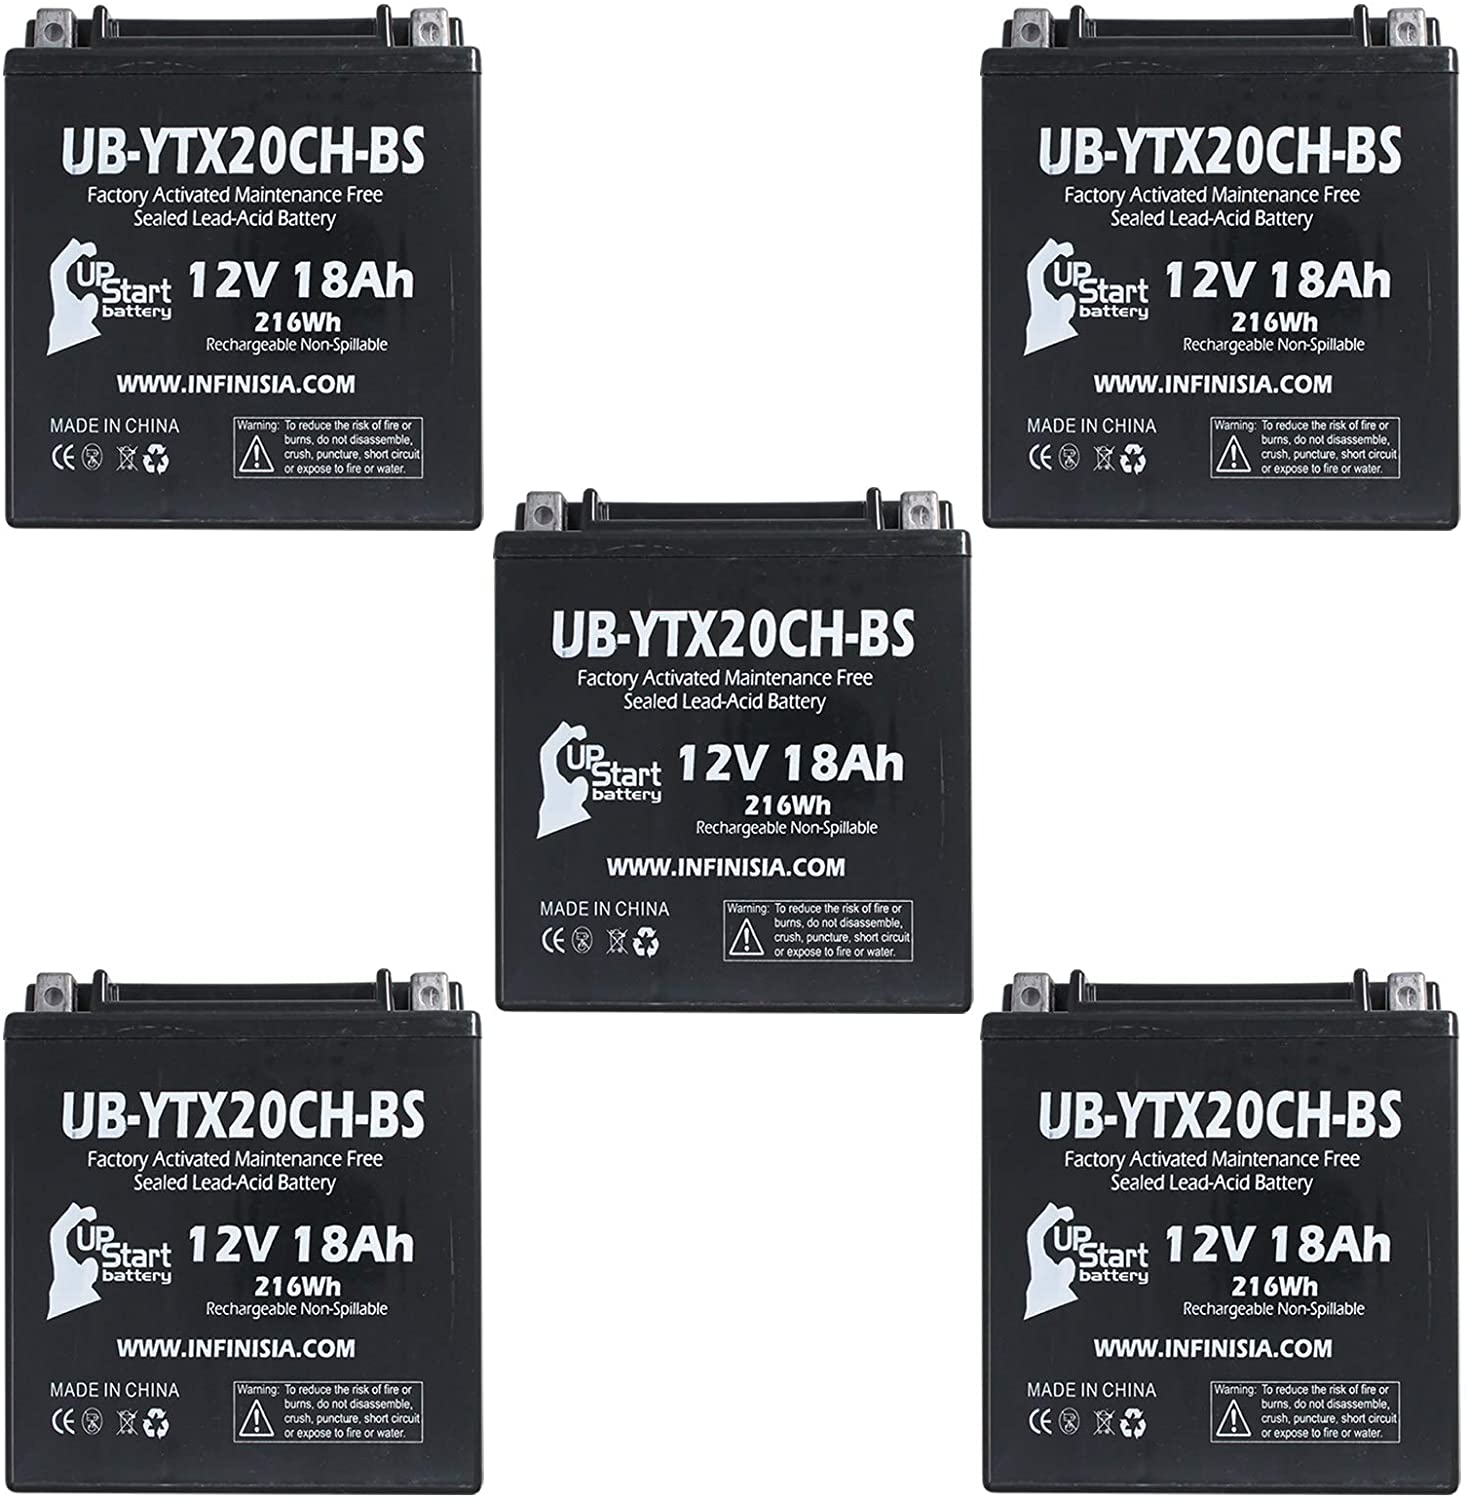 5-Pack UB-YTX20CH-BS Battery Replacement for 2015 Suzuki VL1500 Boulevard C90 1500 CC Motorcycle - Factory Activated, Maintenance Free, Motorcycle Battery - 12V, 18AH, UpStart Battery Brand